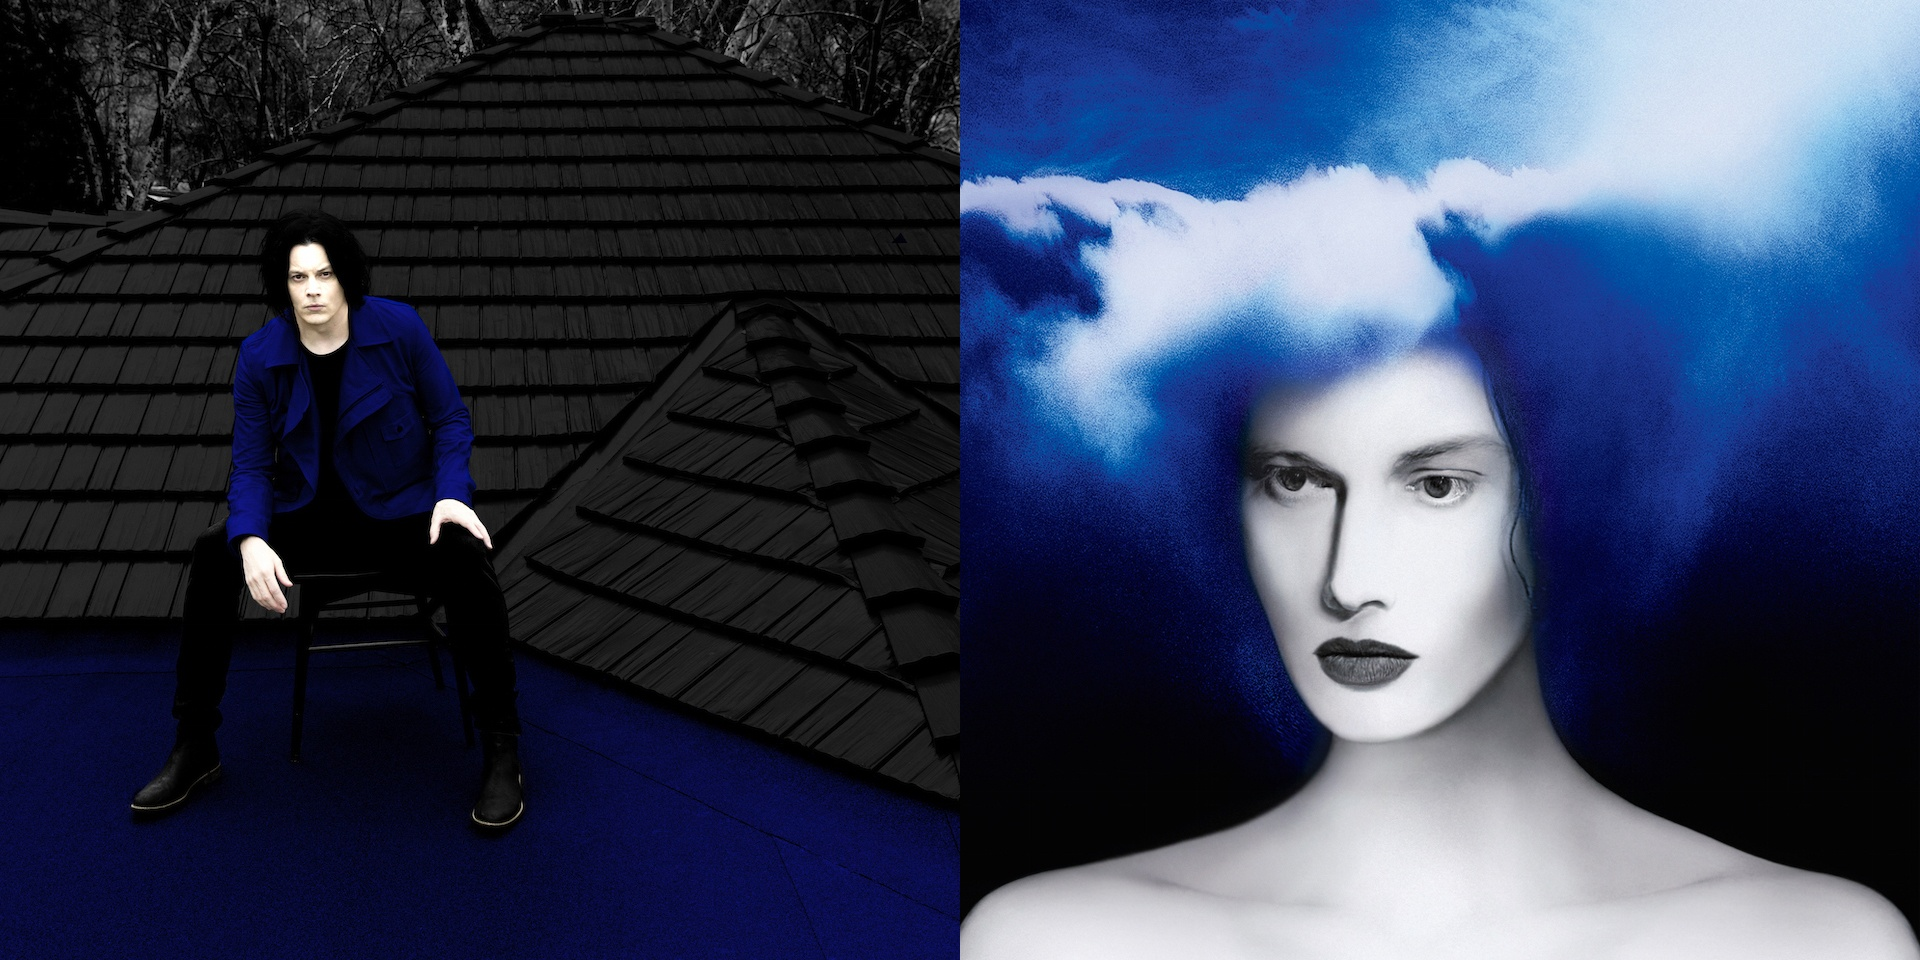 Mosta Records LP to host Jack White album launch this weekend, offer discount on all Third Man Records items